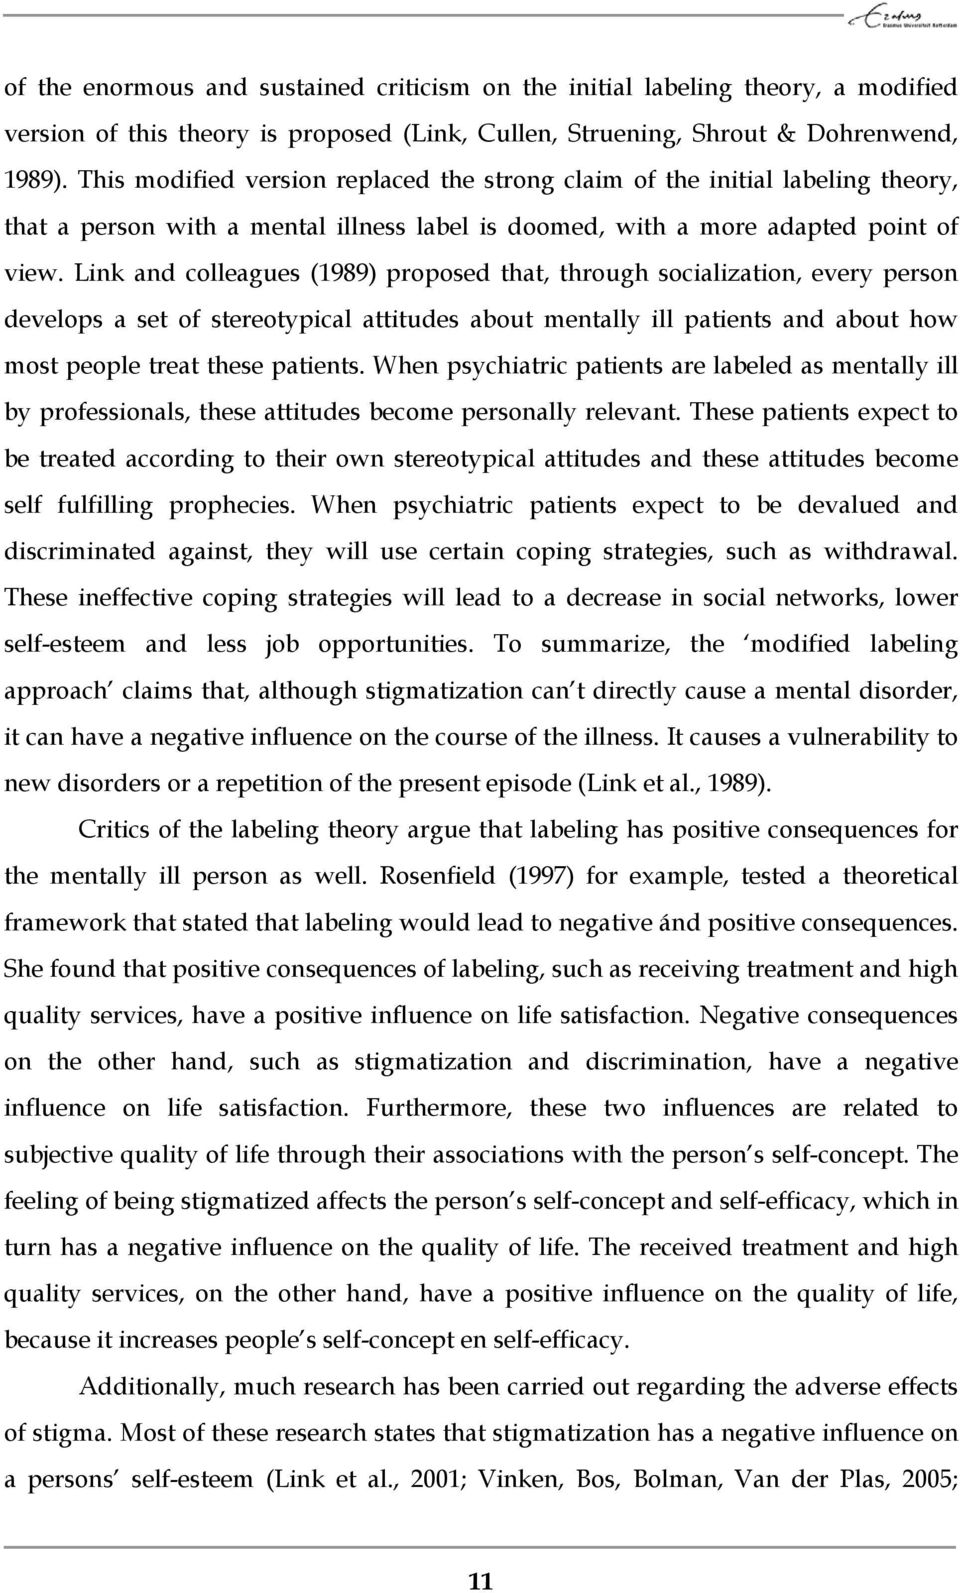 Link and colleagues (1989) proposed that, through socialization, every person develops a set of stereotypical attitudes about mentally ill patients and about how most people treat these patients.